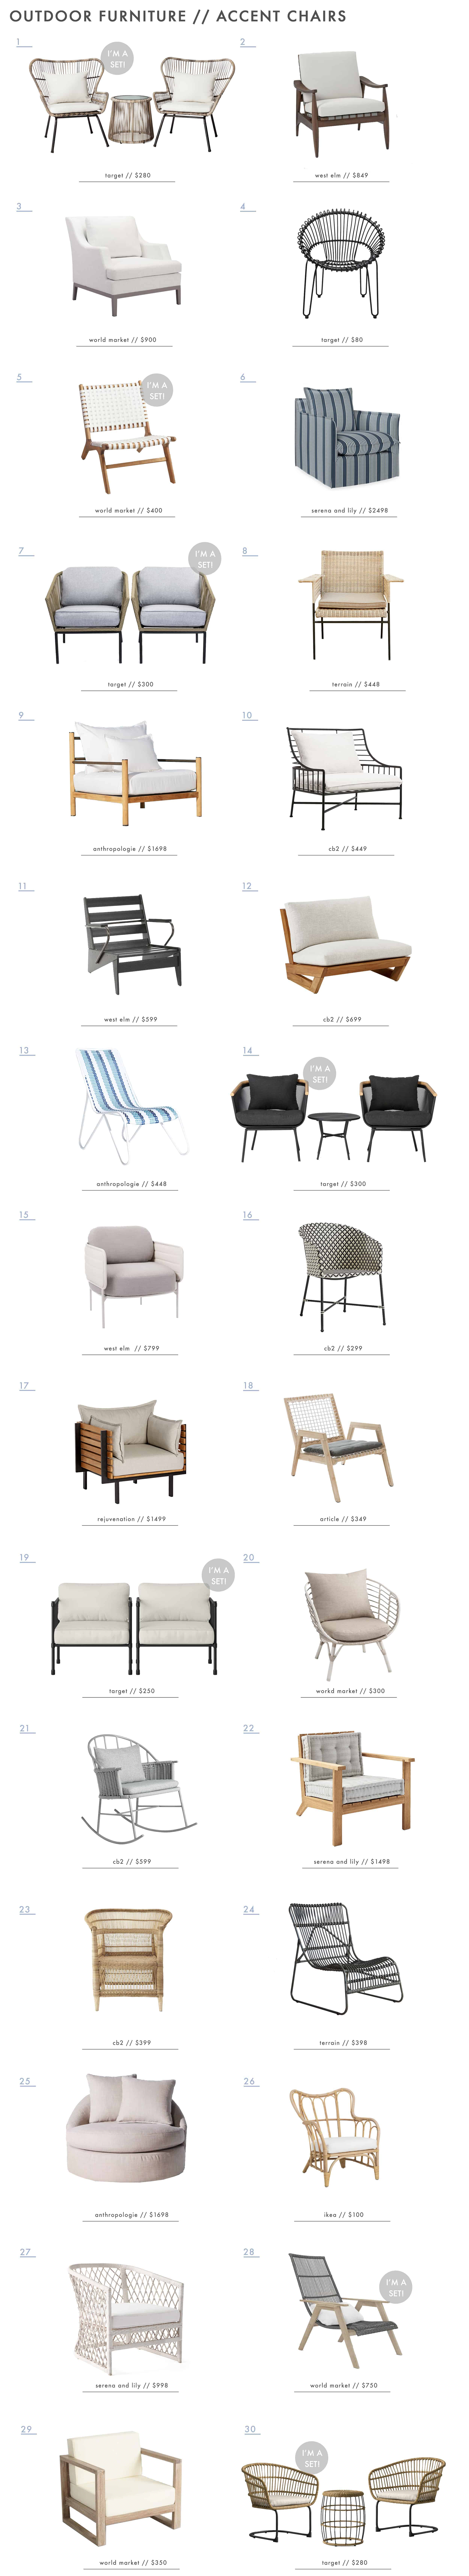 Outdoor Furniture Roundup Emily Henderson Lounge Furniture Accent Chair